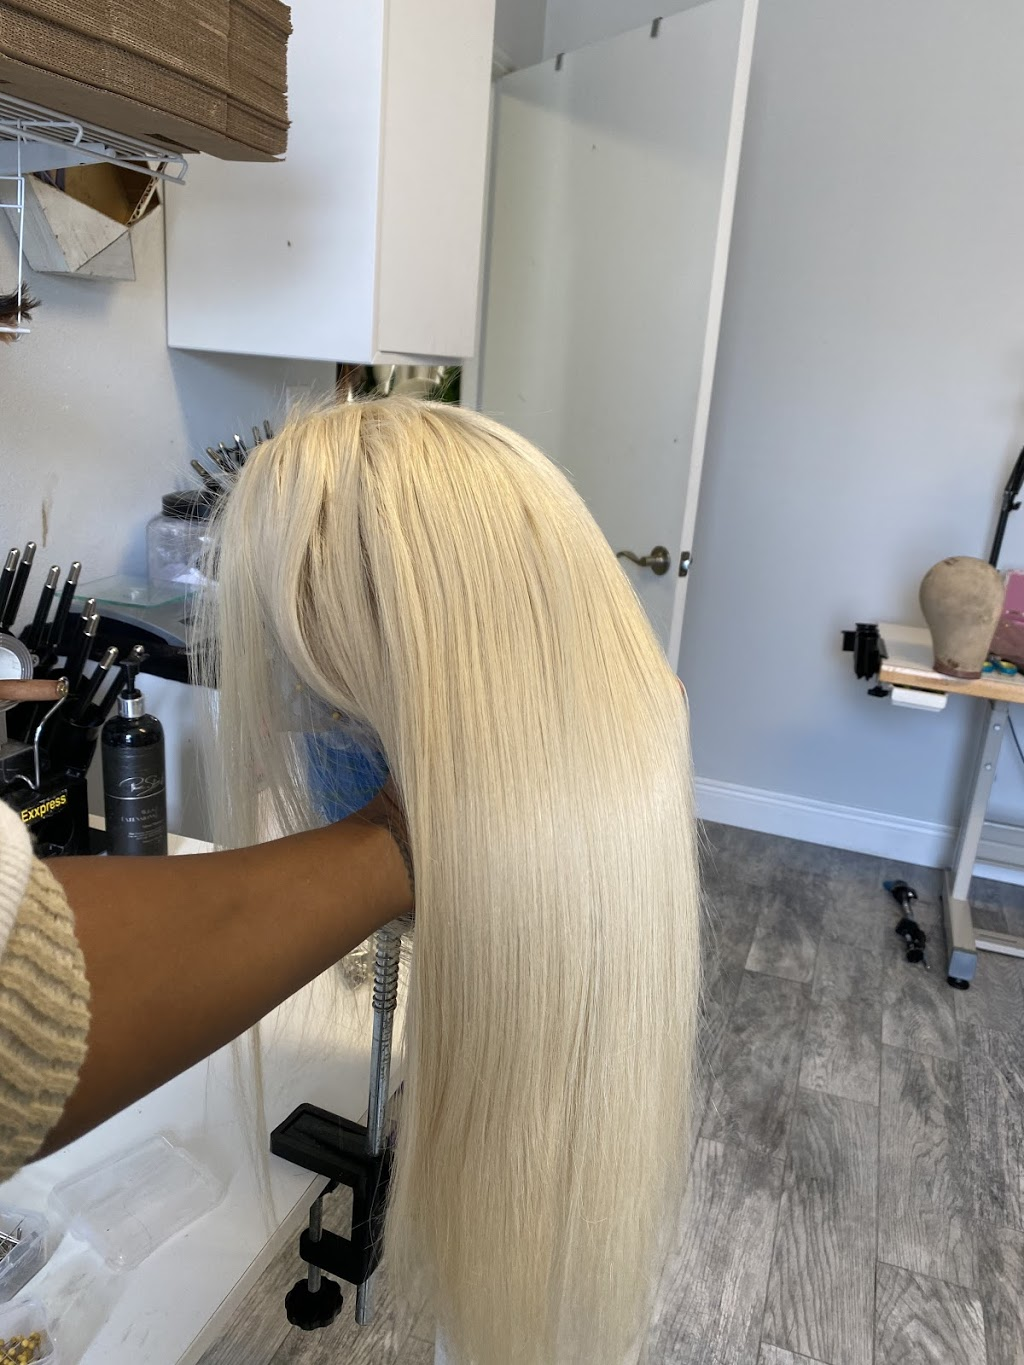 Phive Star Hair Boutique - hair care  | Photo 6 of 10 | Address: 320 N Magnolia Ave A5, Orlando, FL 32801, USA | Phone: (954) 243-7478